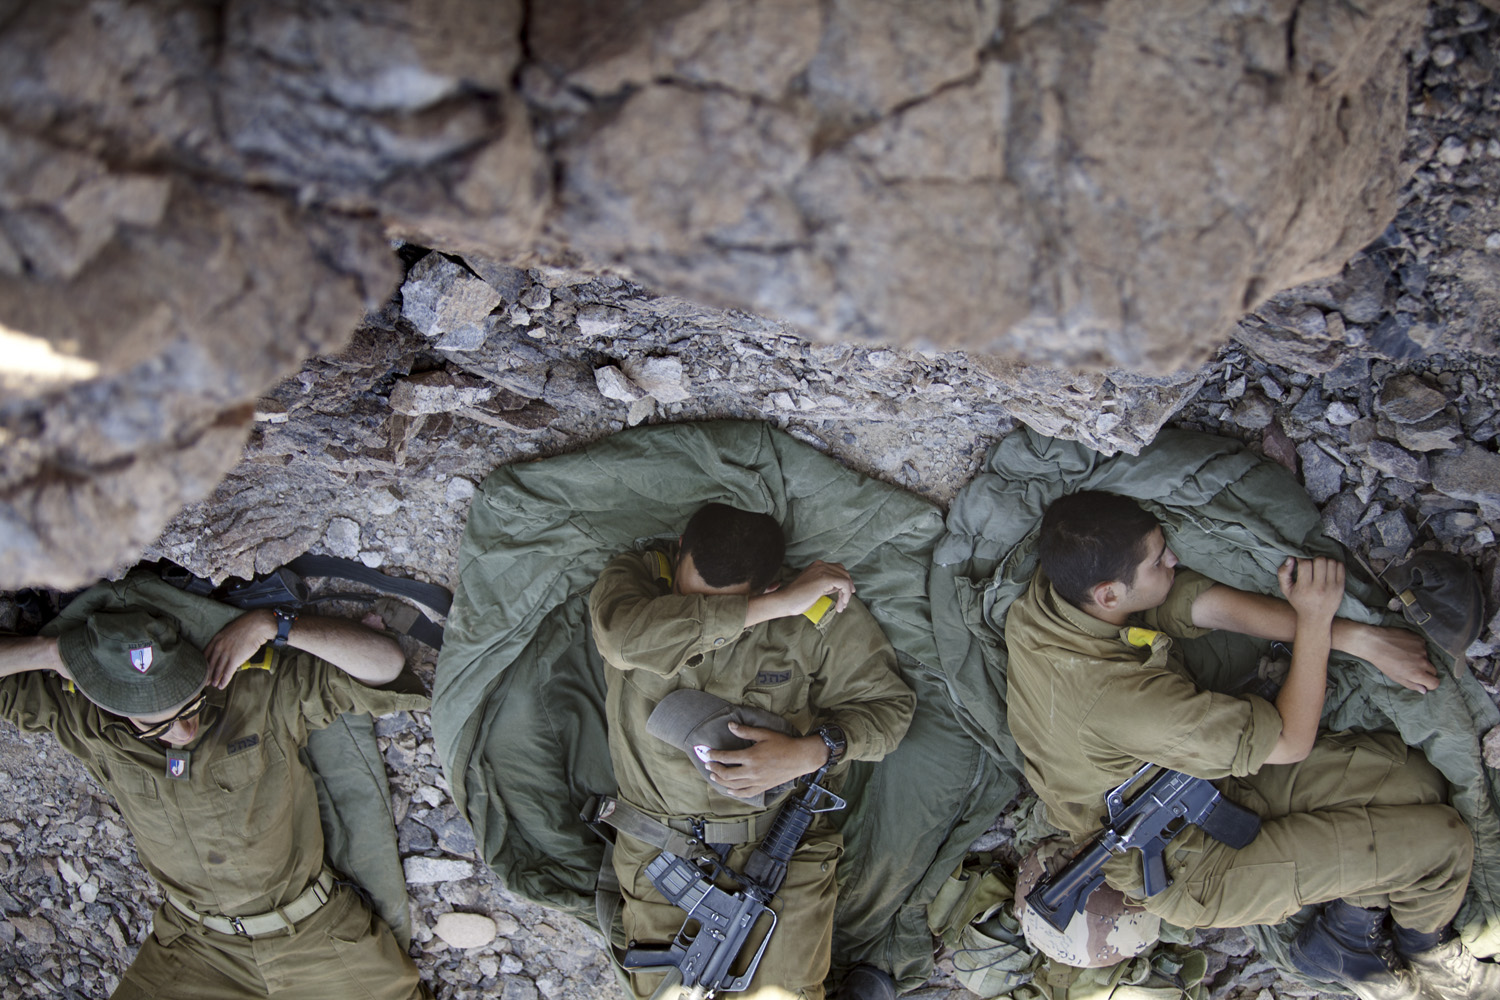 August 19, 2011. Israeli army troops rest on the Israeli-Egyptian border, following a series of coordinated gun and roadside bomb attacks against military and civilian targets north of the Red Sea town of Eilat, Israel.